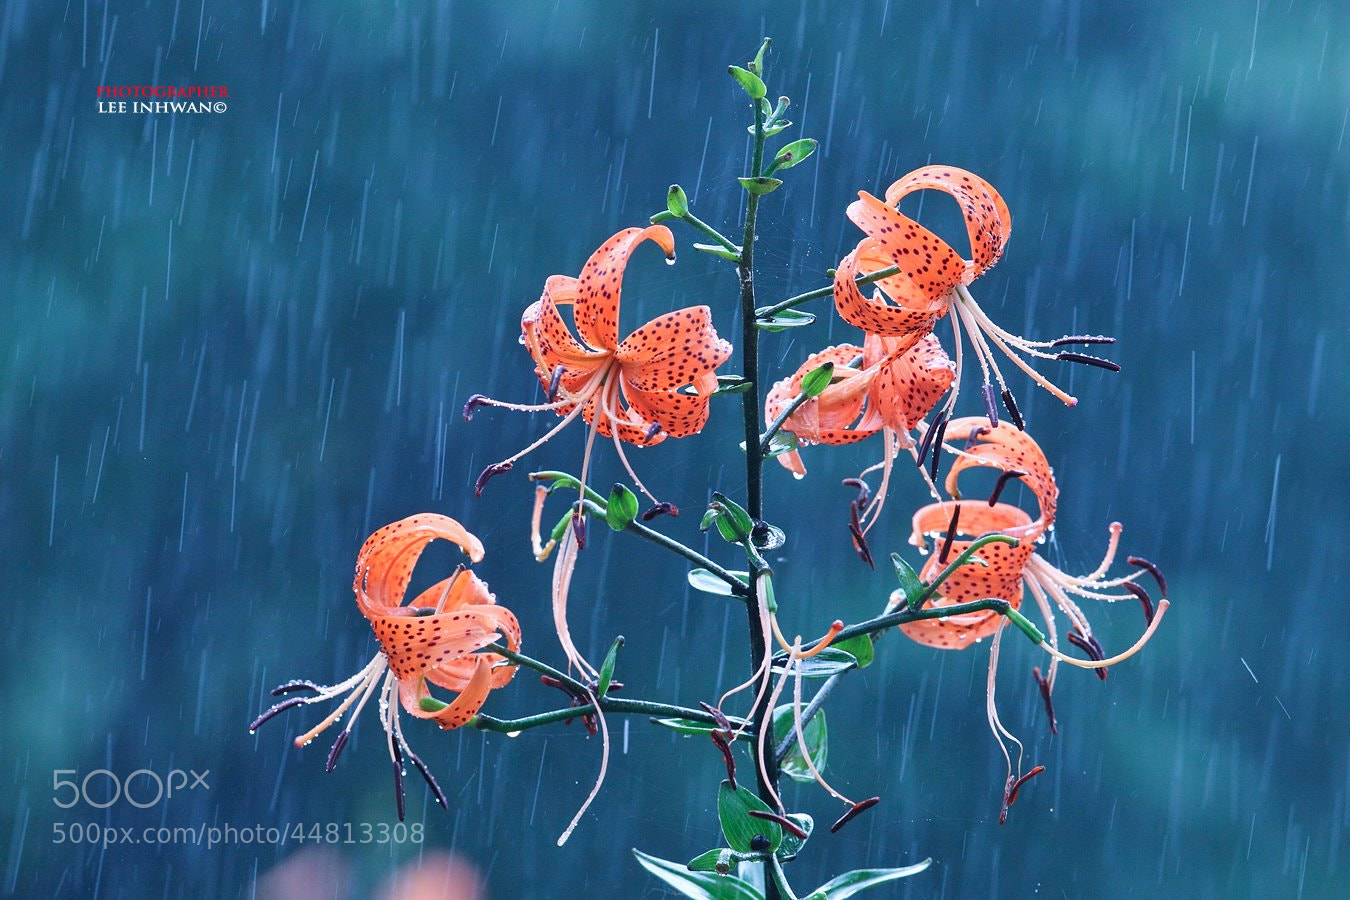 Photograph A heavy rainy day by LEE INHWAN on 500px